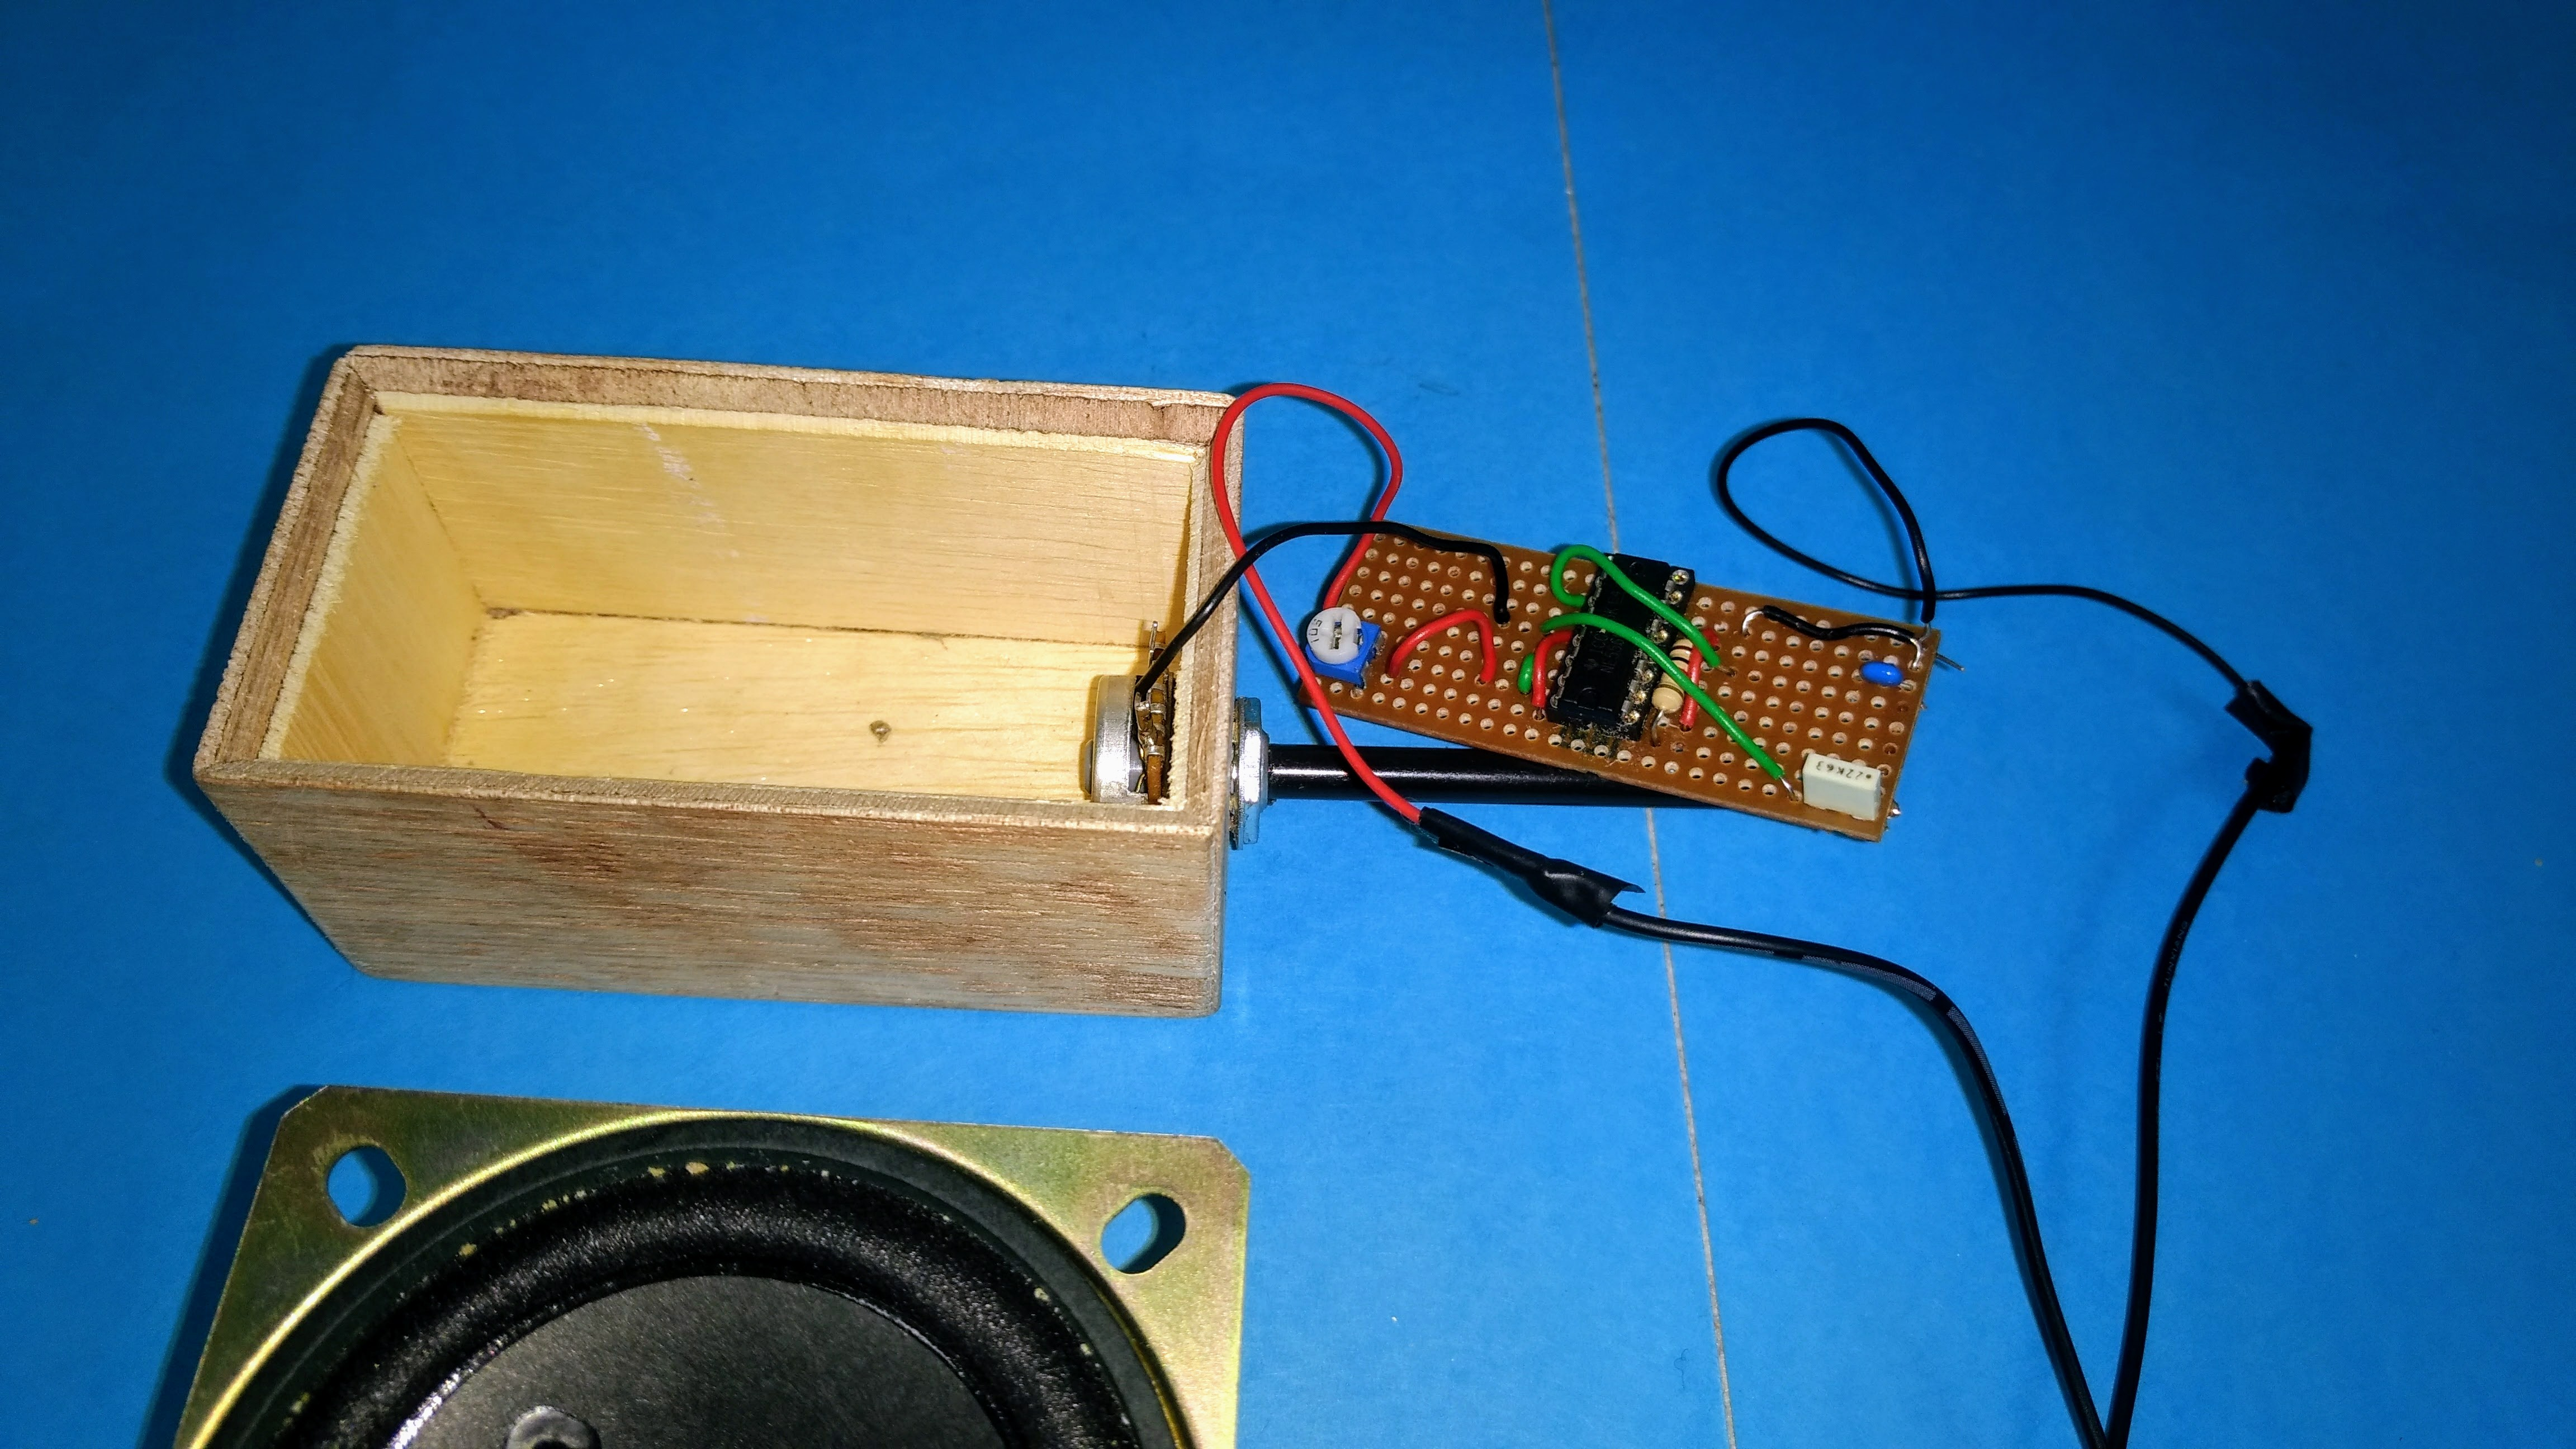 Synthesis With Light Atari Punk Console Forrest Mims Punkpac The Finally Here Are My Perfboard Layouts And Some Pictures I Have Started Process Of Soldering Components To Will Upload More Images Once A Working Synth Inside Box